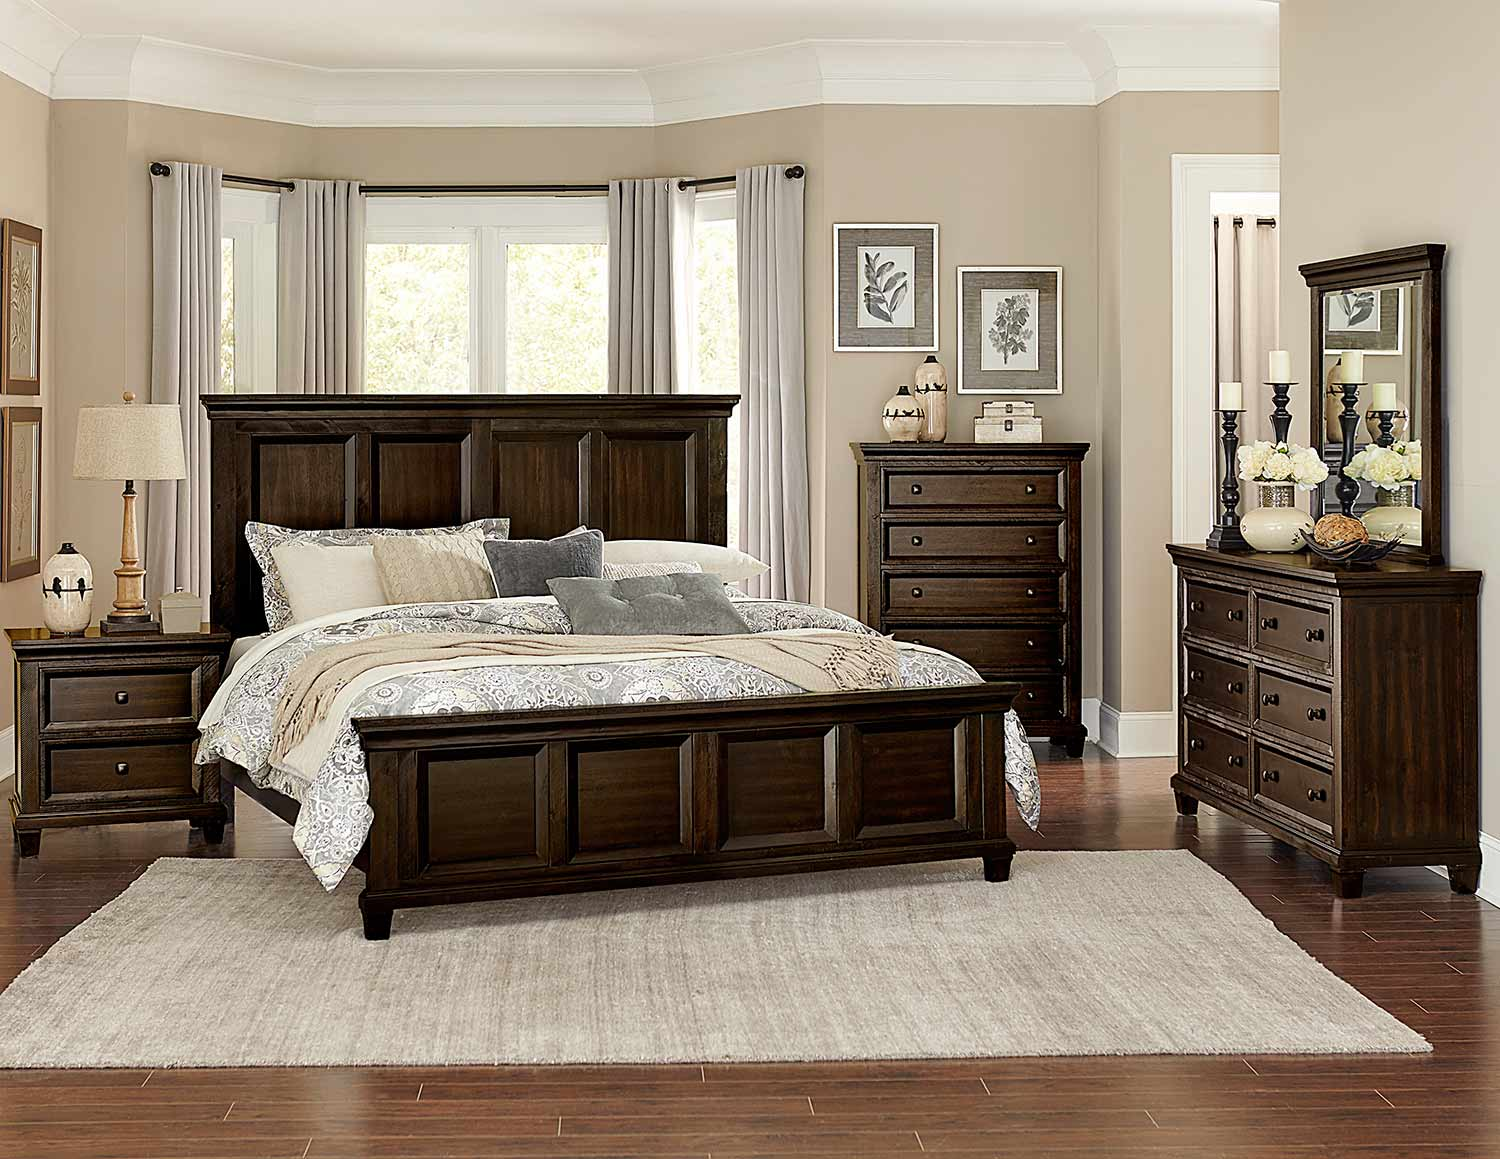 Homelegance Birman Panel Bedroom Set - Dark Espresso